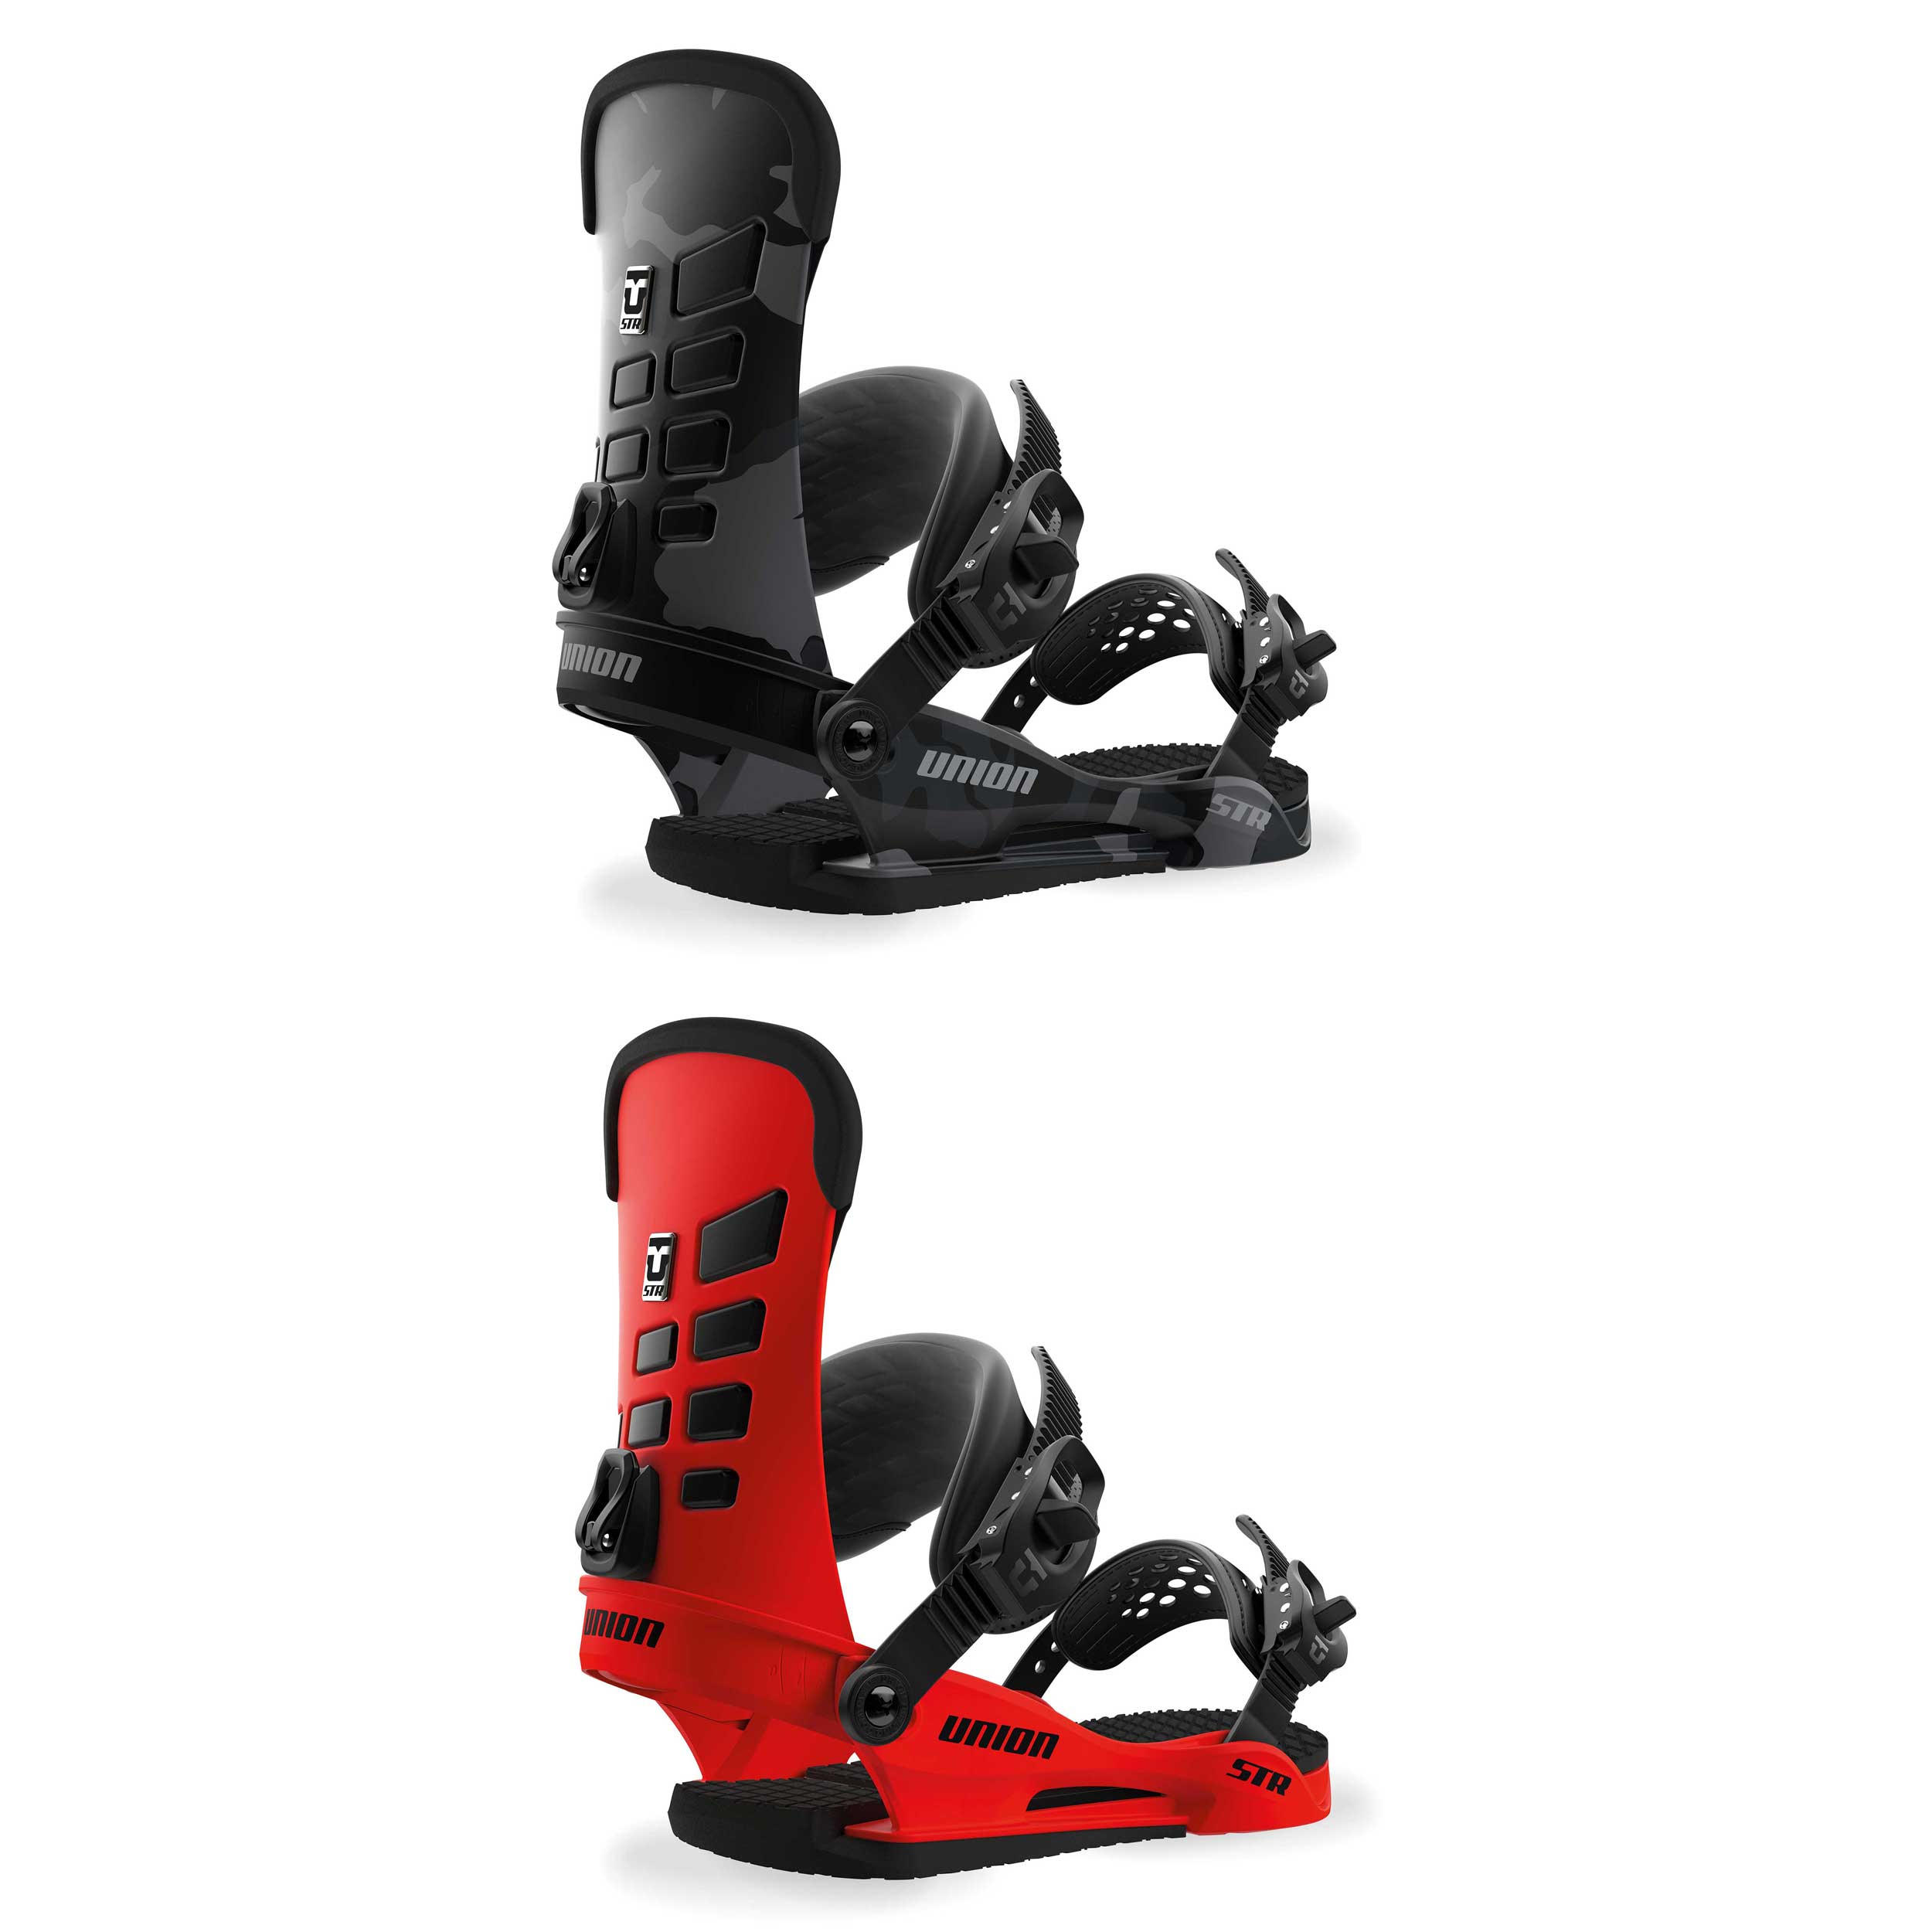 Union STR Snowboard Bindings review